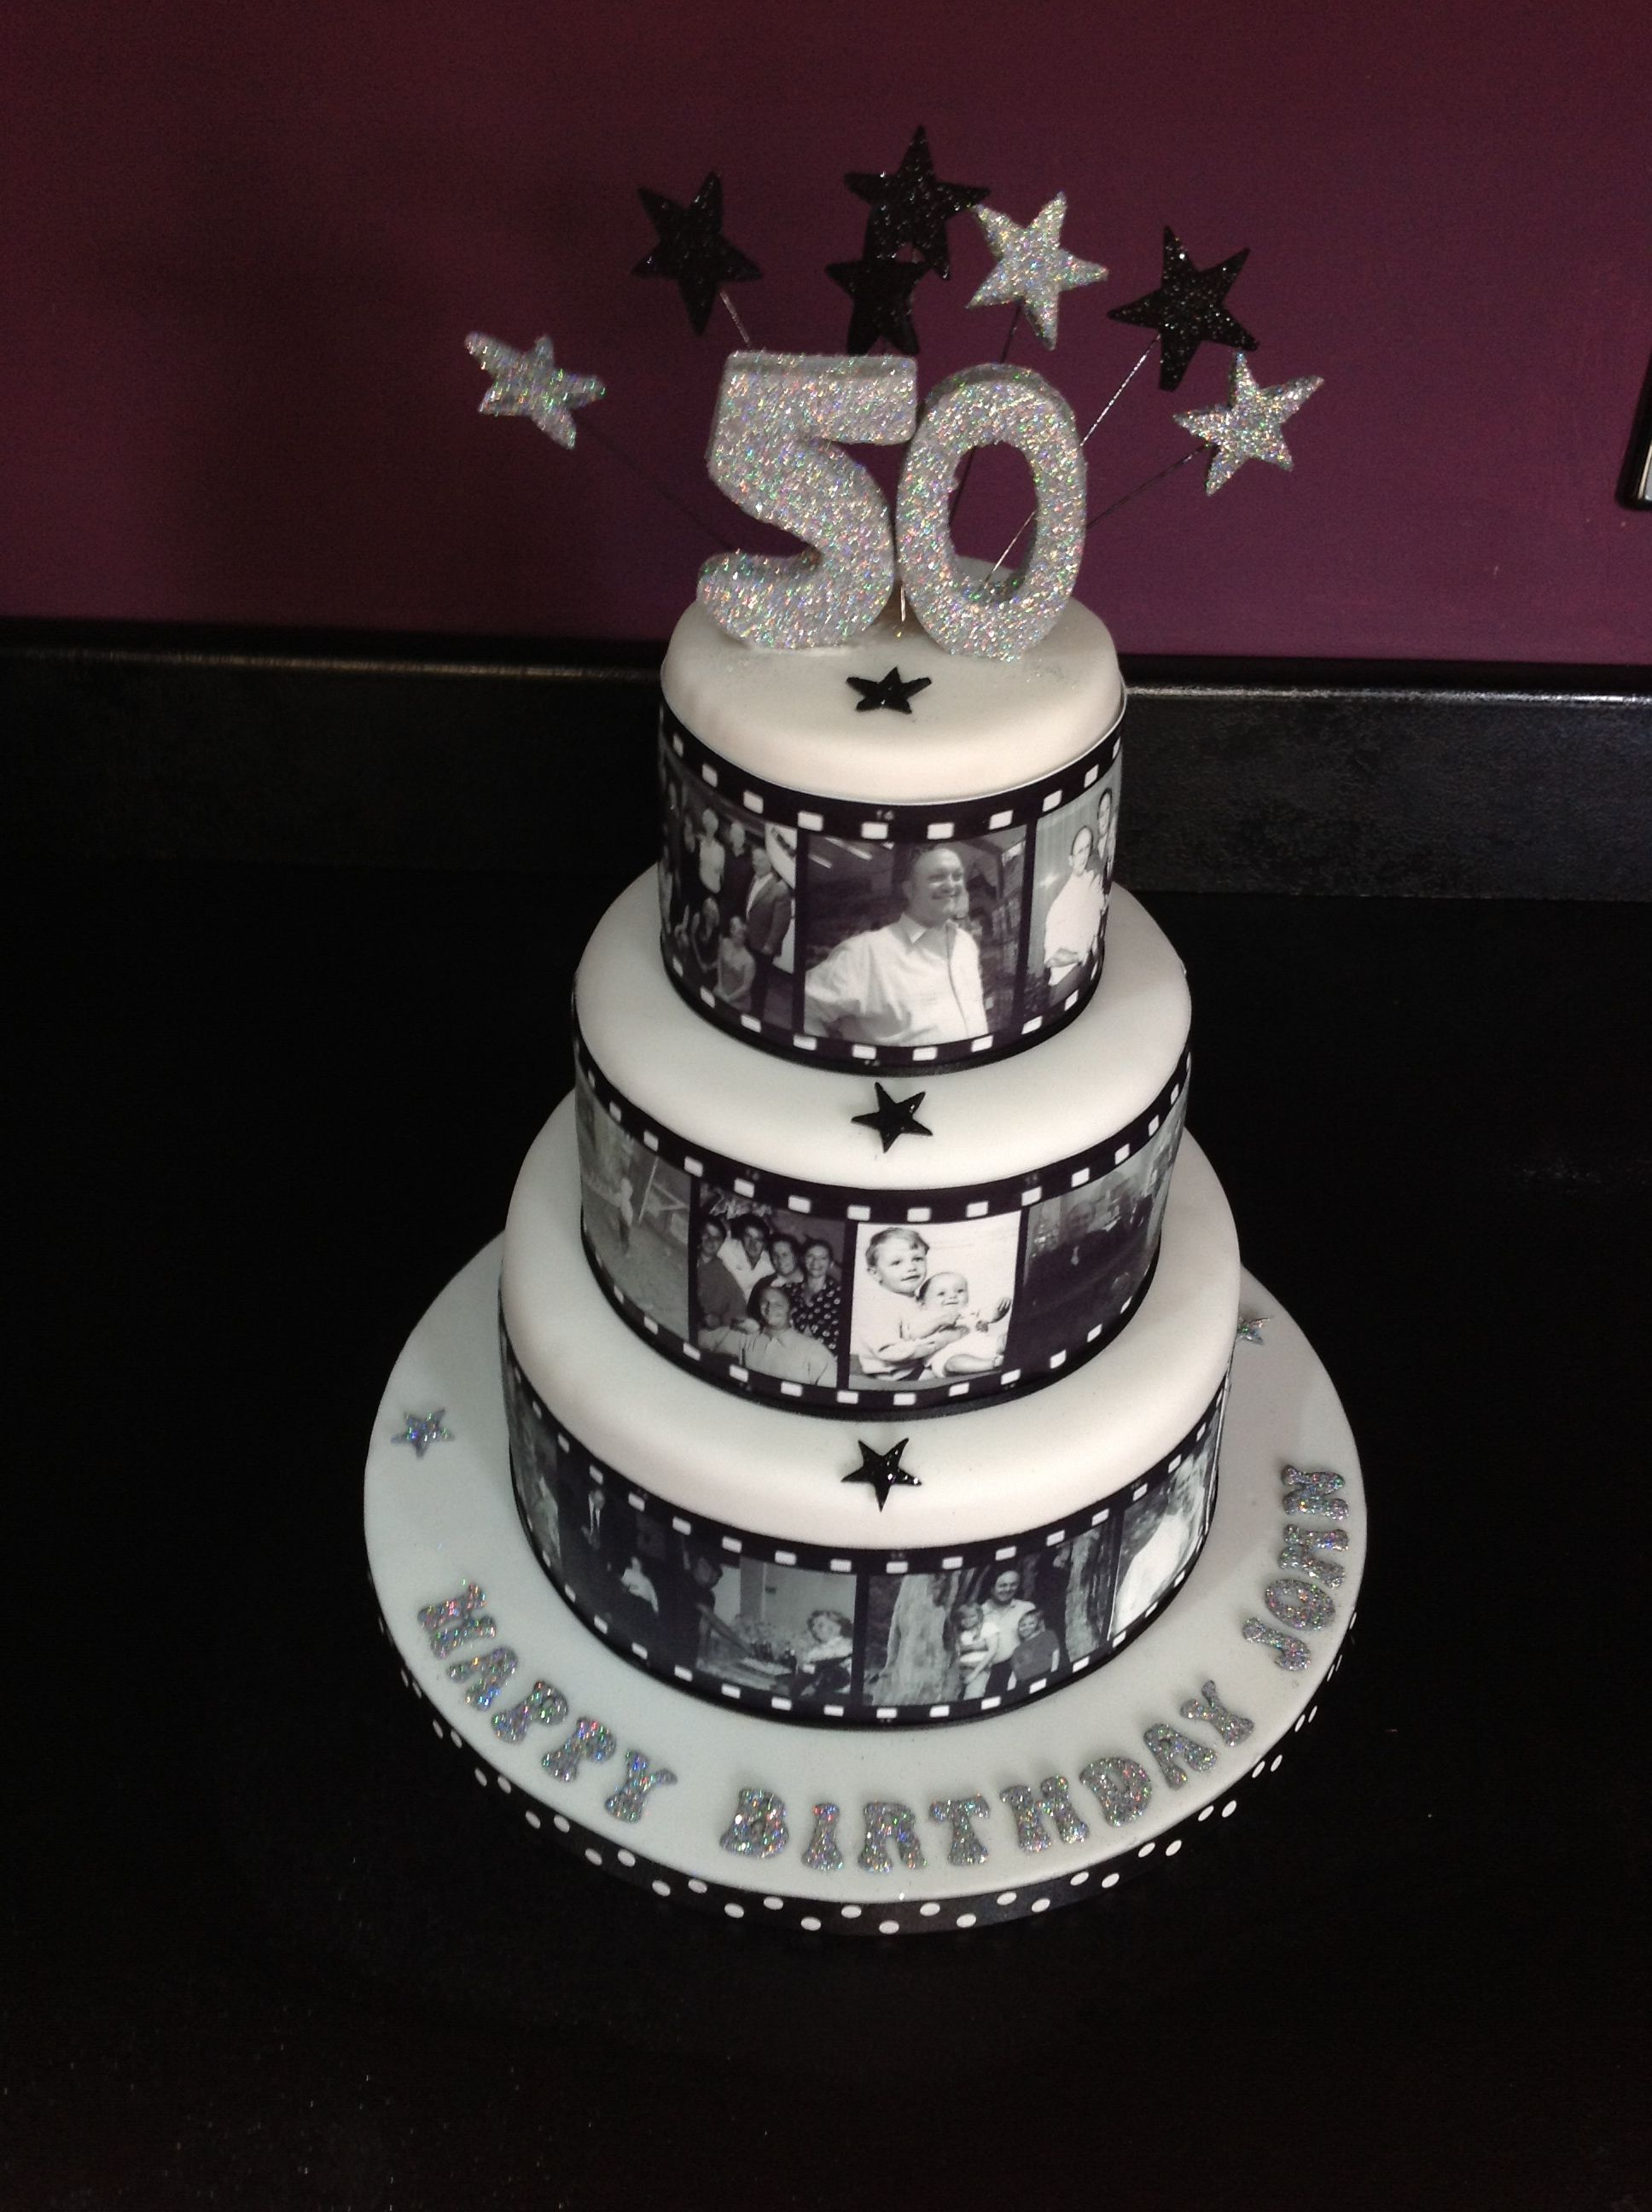 Film reel cake with edible images, 50th birthday cake by